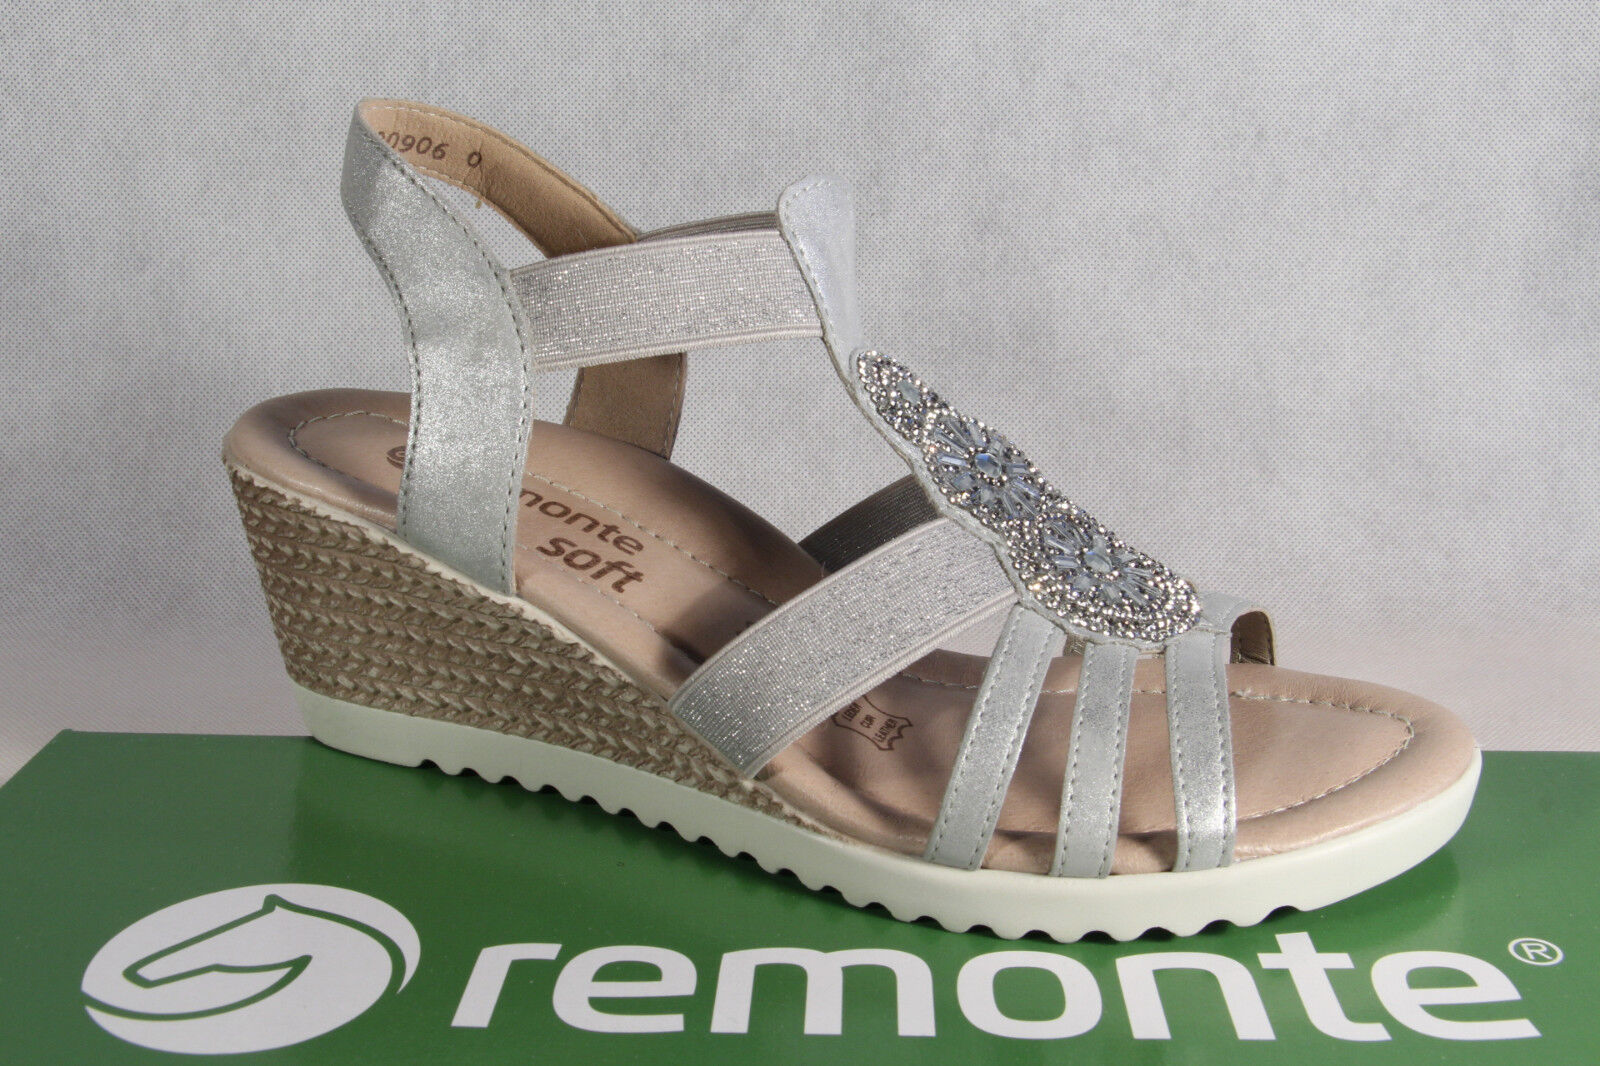 Remonte Sandal Ankle -Strap Sandal High -heeled Sandals  grigio Leather Foot New  vendita di fama mondiale online